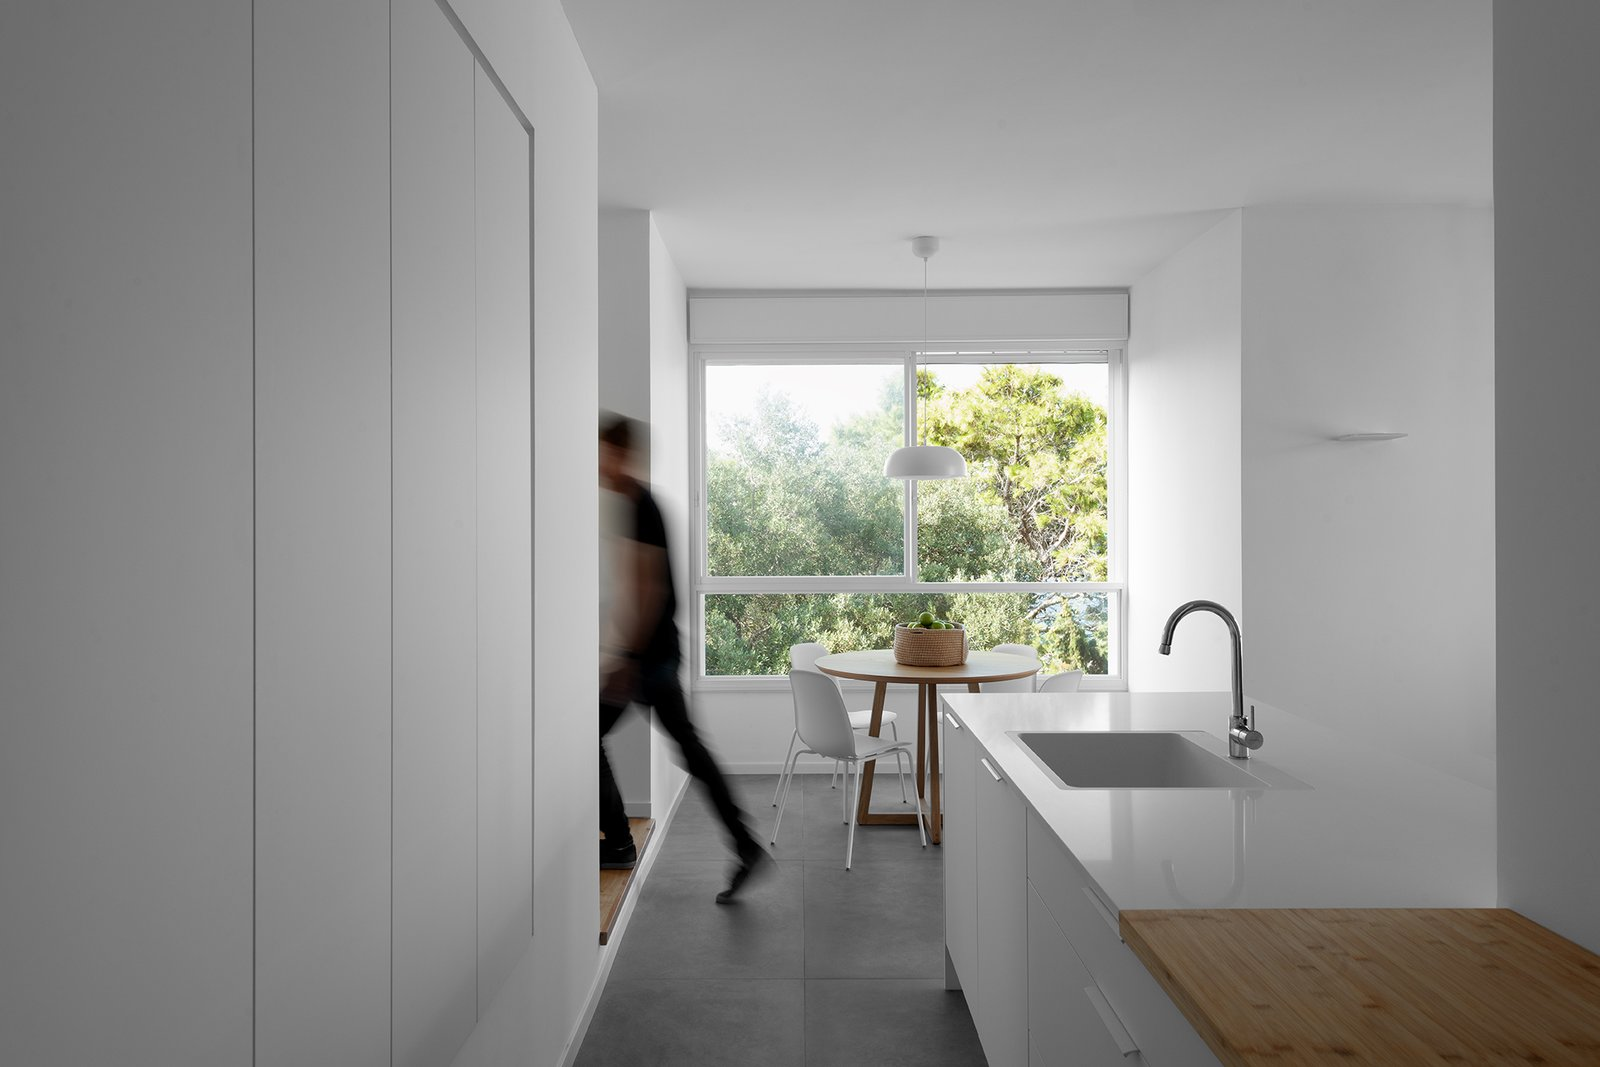 Apartment in Haifa by Michael Peled Architecture Studio white kitchen and dining